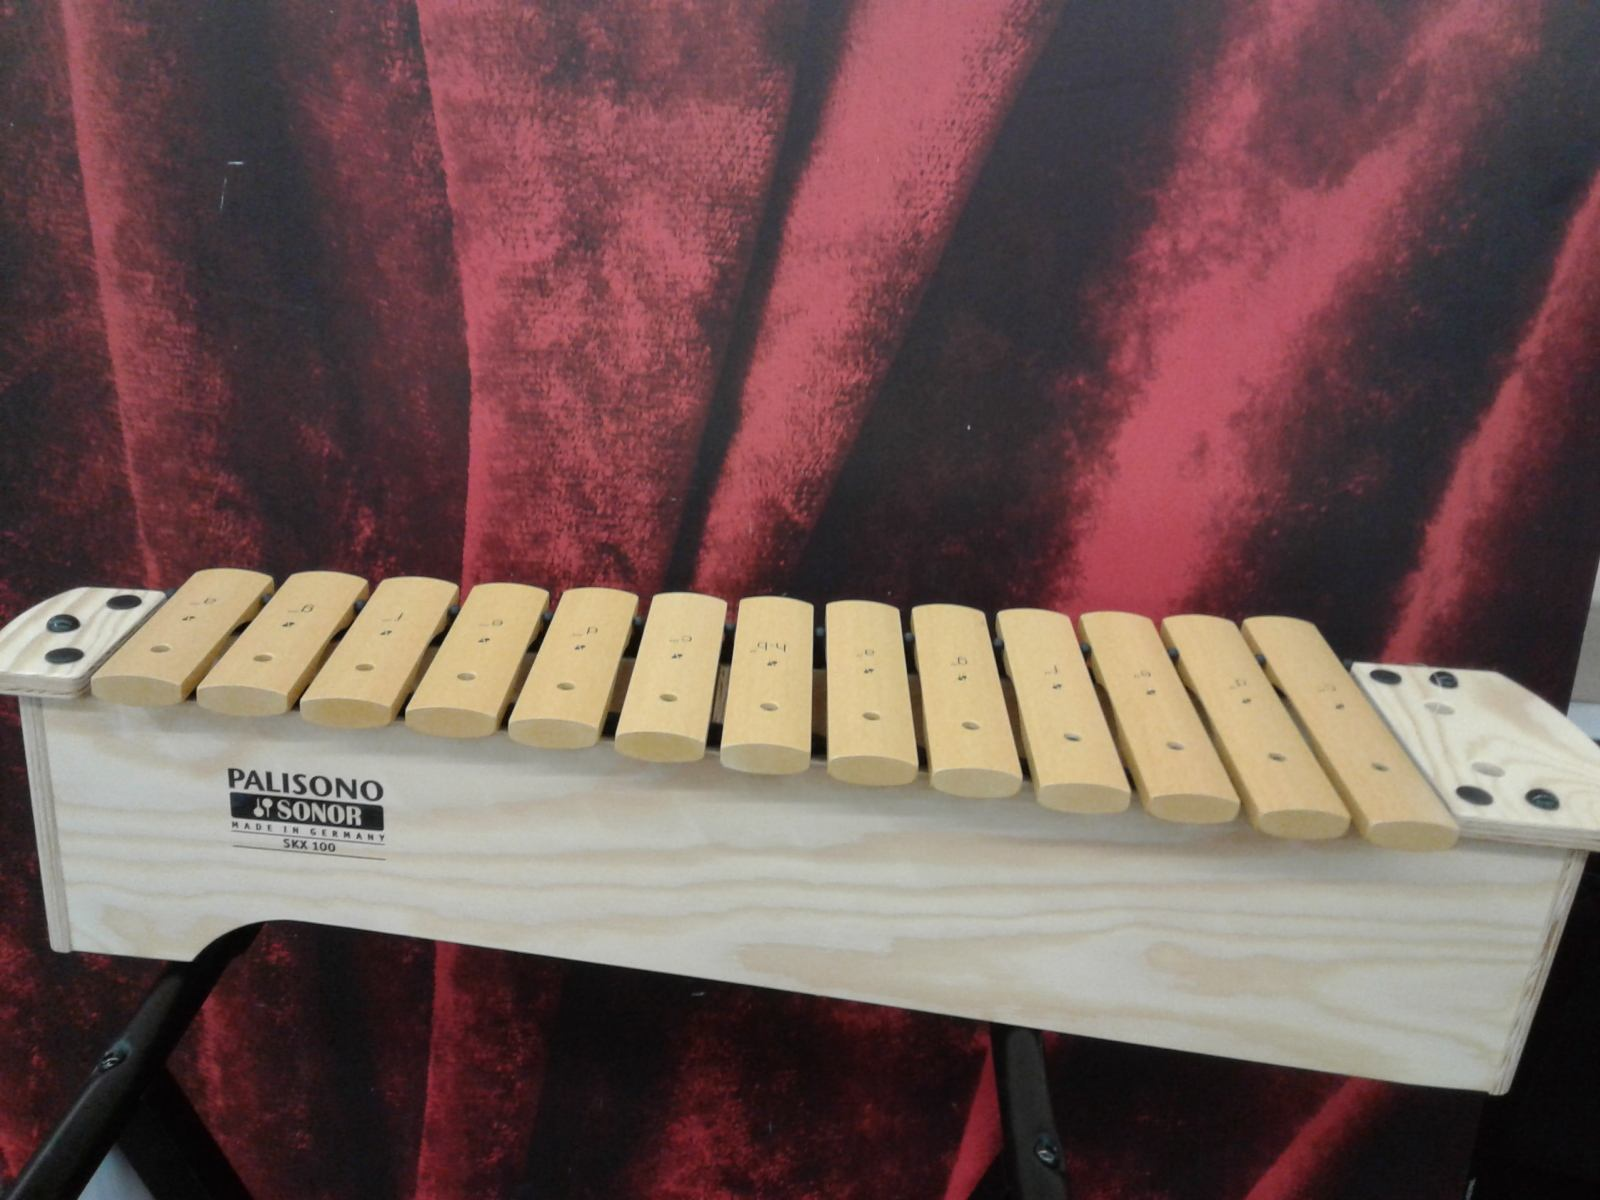 sonor-xylophone-paliosno-mallet-strike-hit-play-made-in-germany-wood-keys